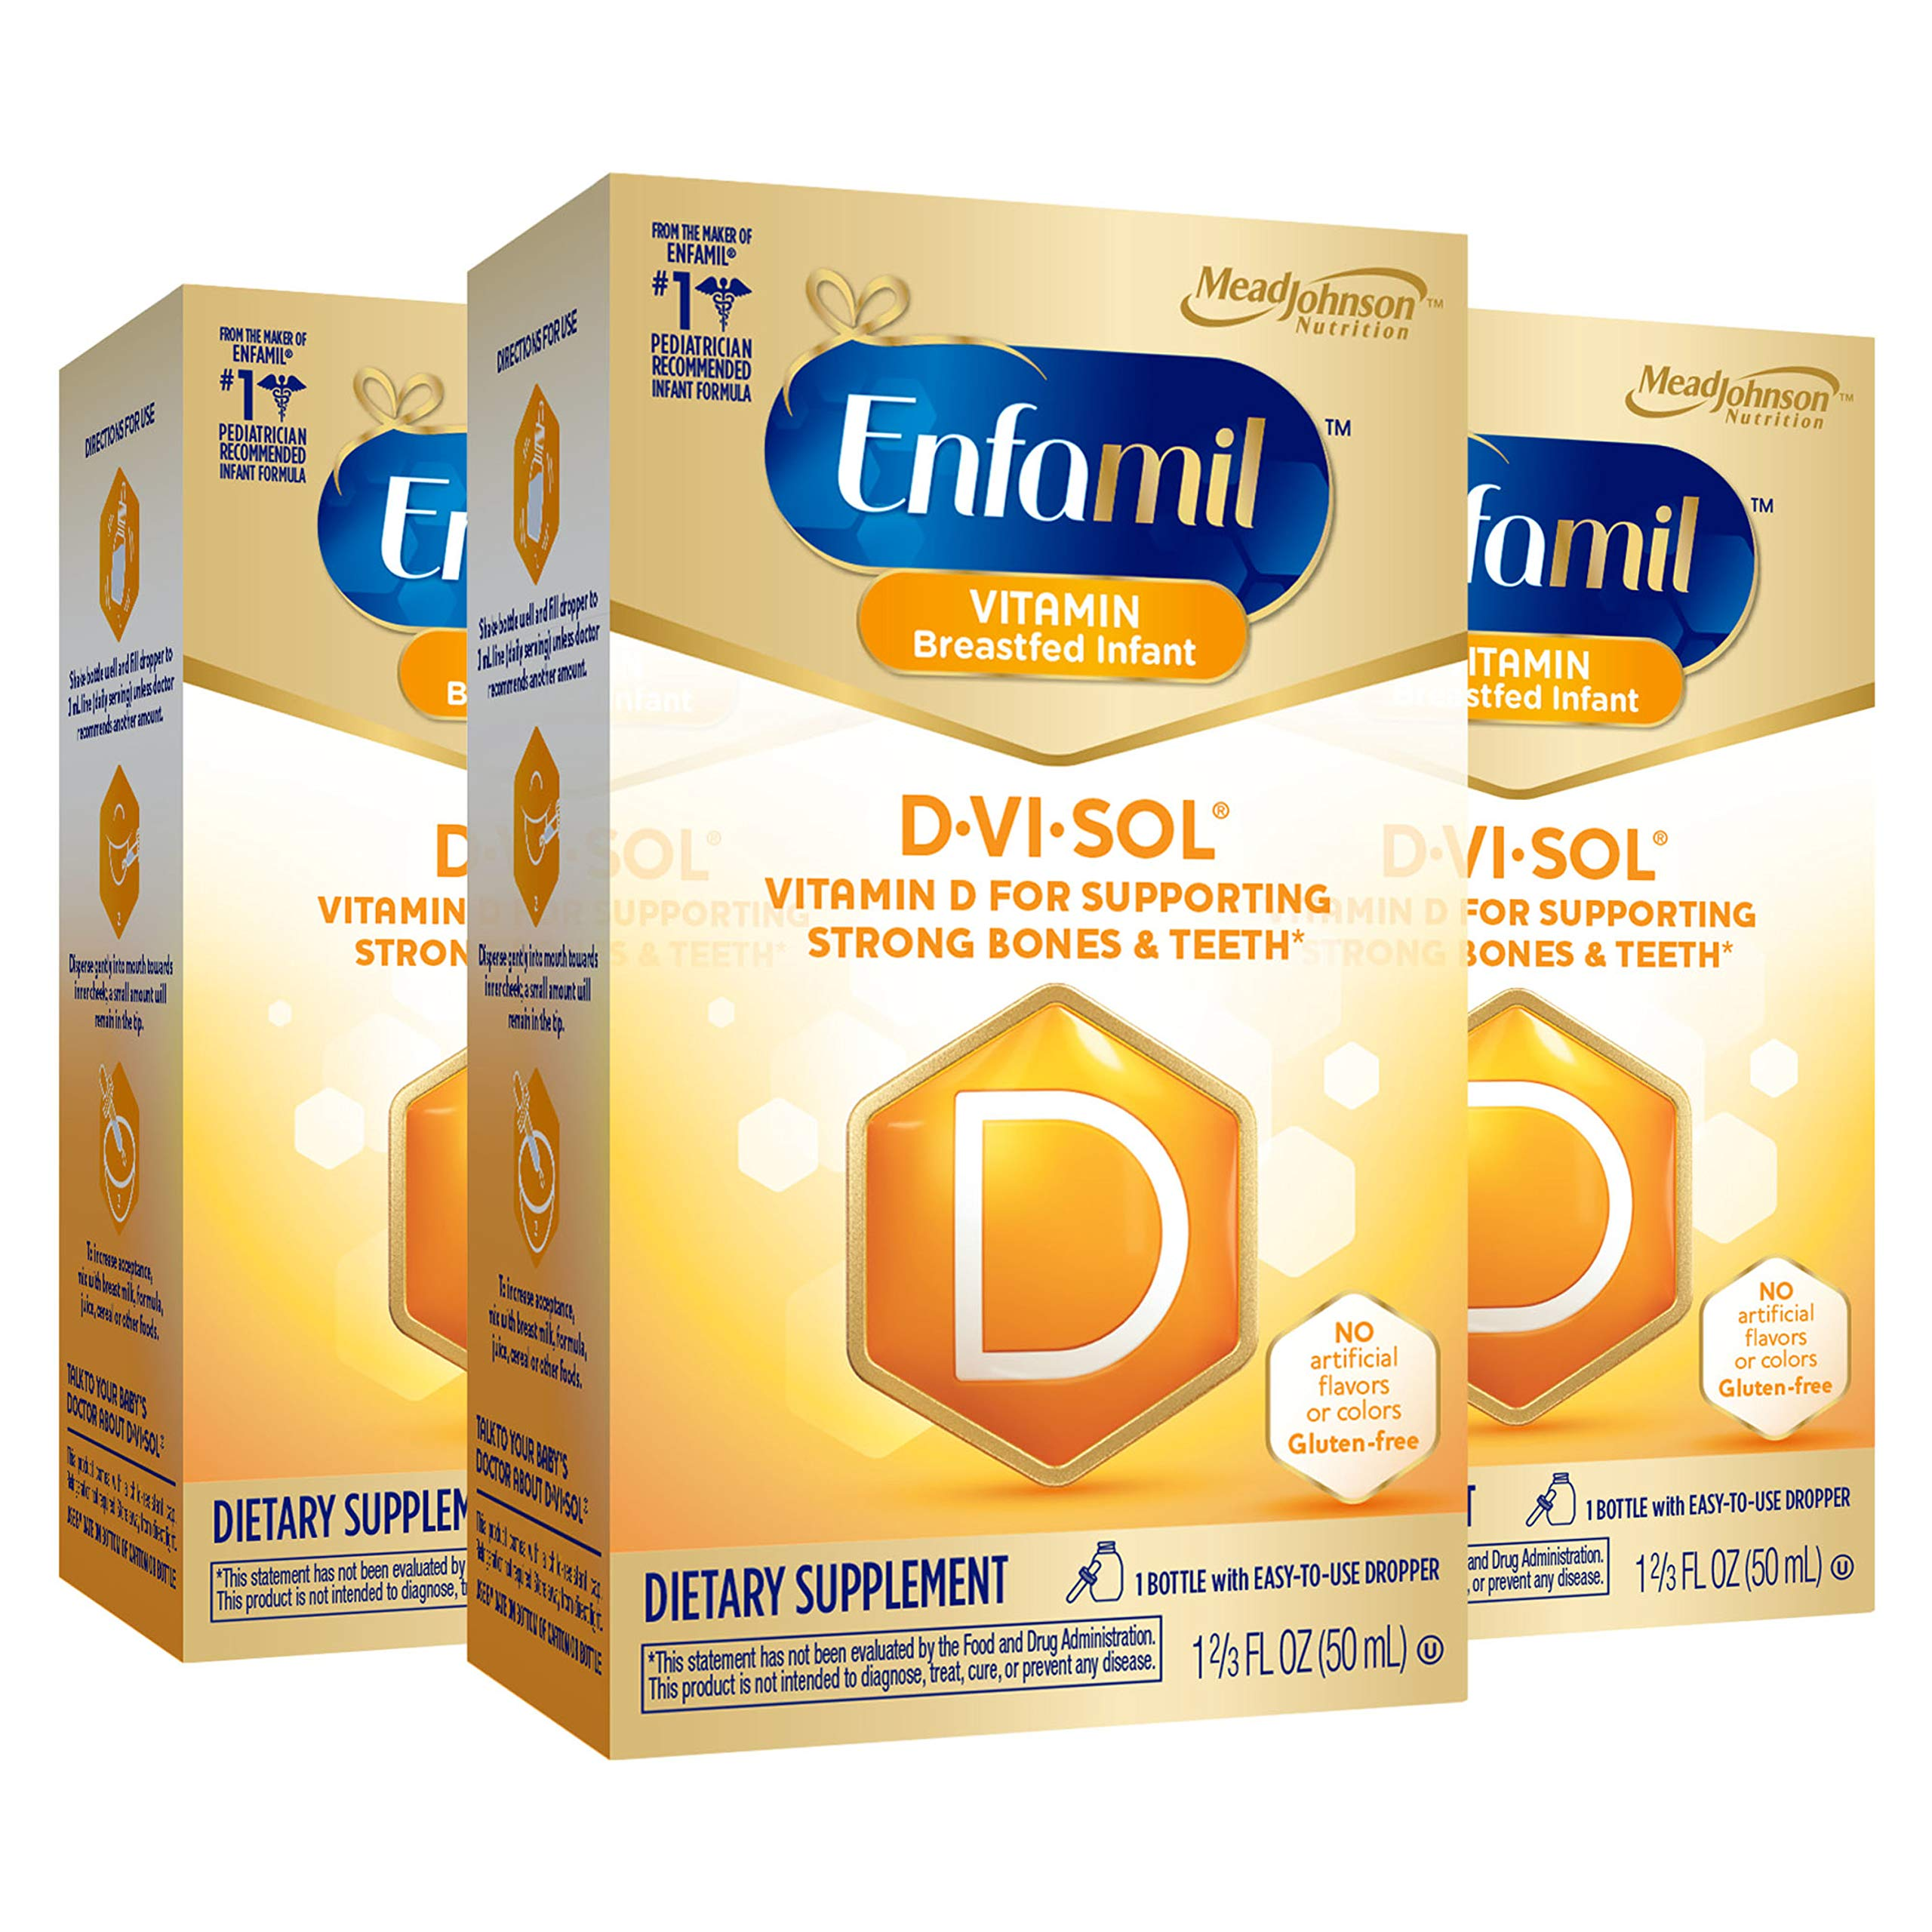 Enfamil D-Vi-Sol Vitamin D Supplement Drops 50 mL(Packs of 3)